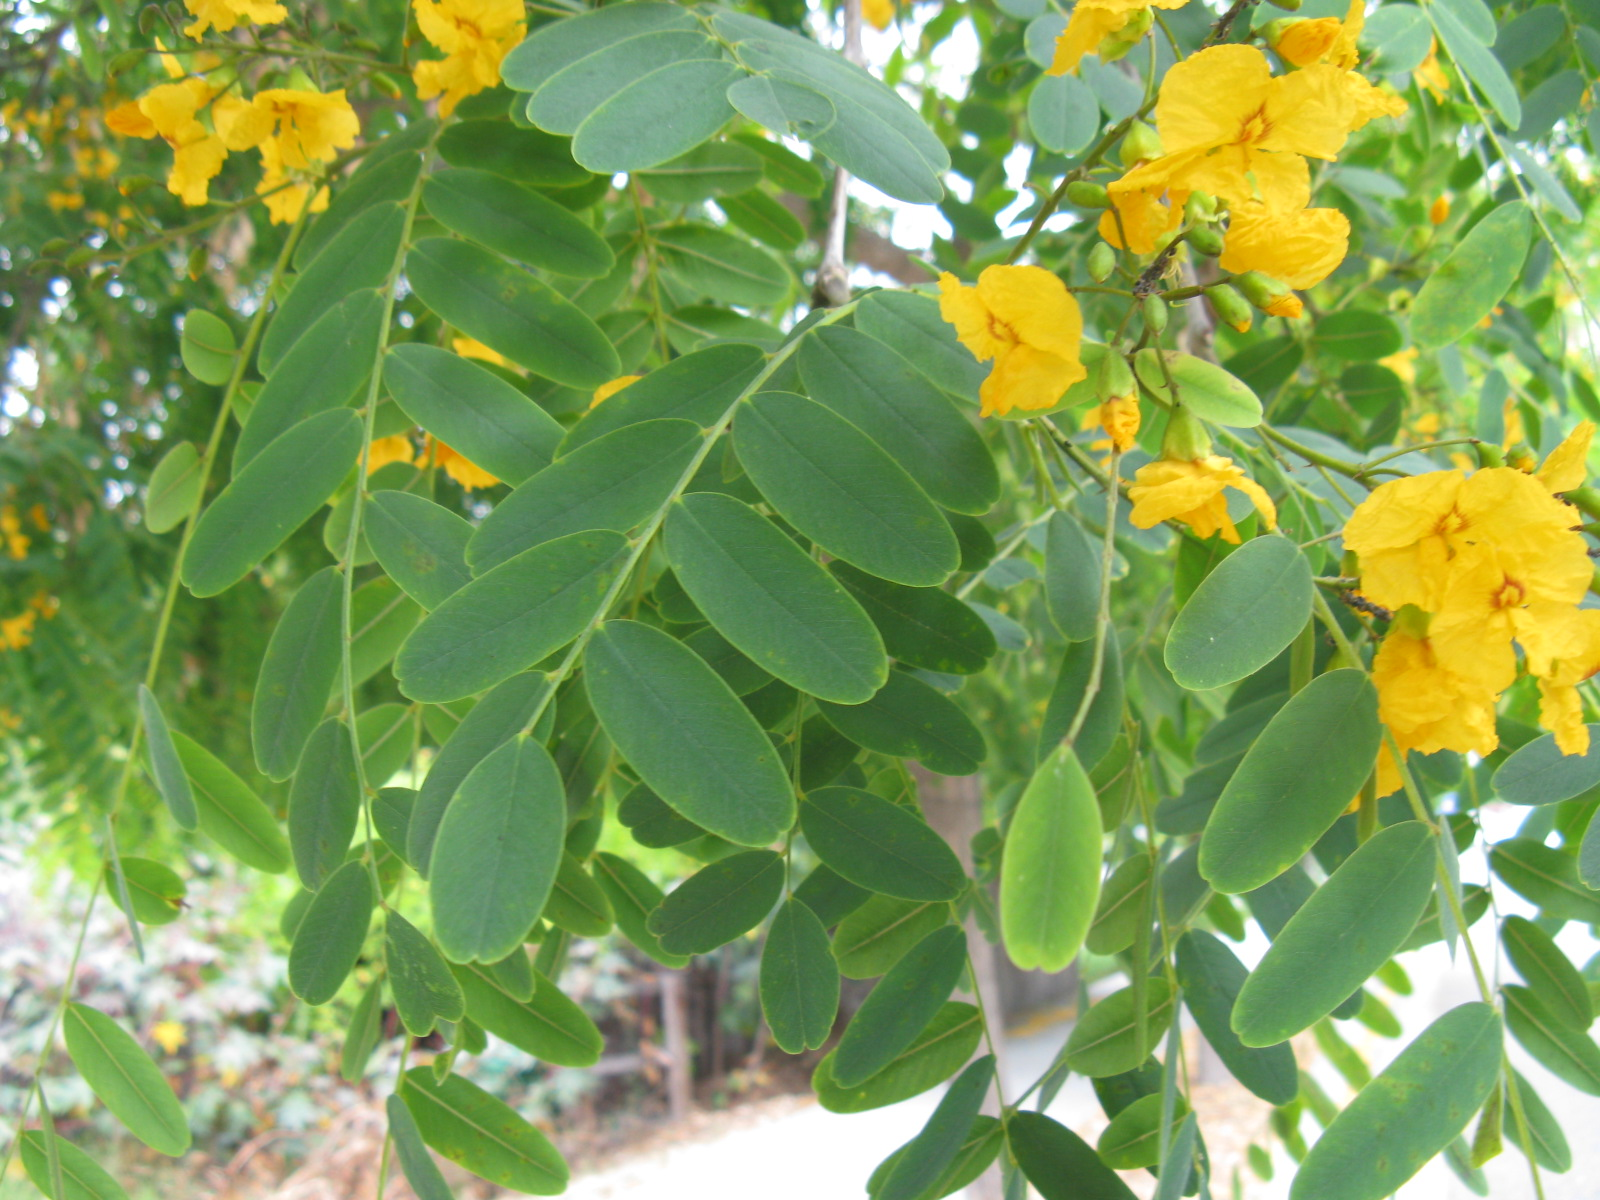 Trees of santa cruz county tipuana tipu tipu tree light yellow flowers borne in early summer in terminal panicles pea like differs from cassia which is not really pea like orange yellow flowers mightylinksfo